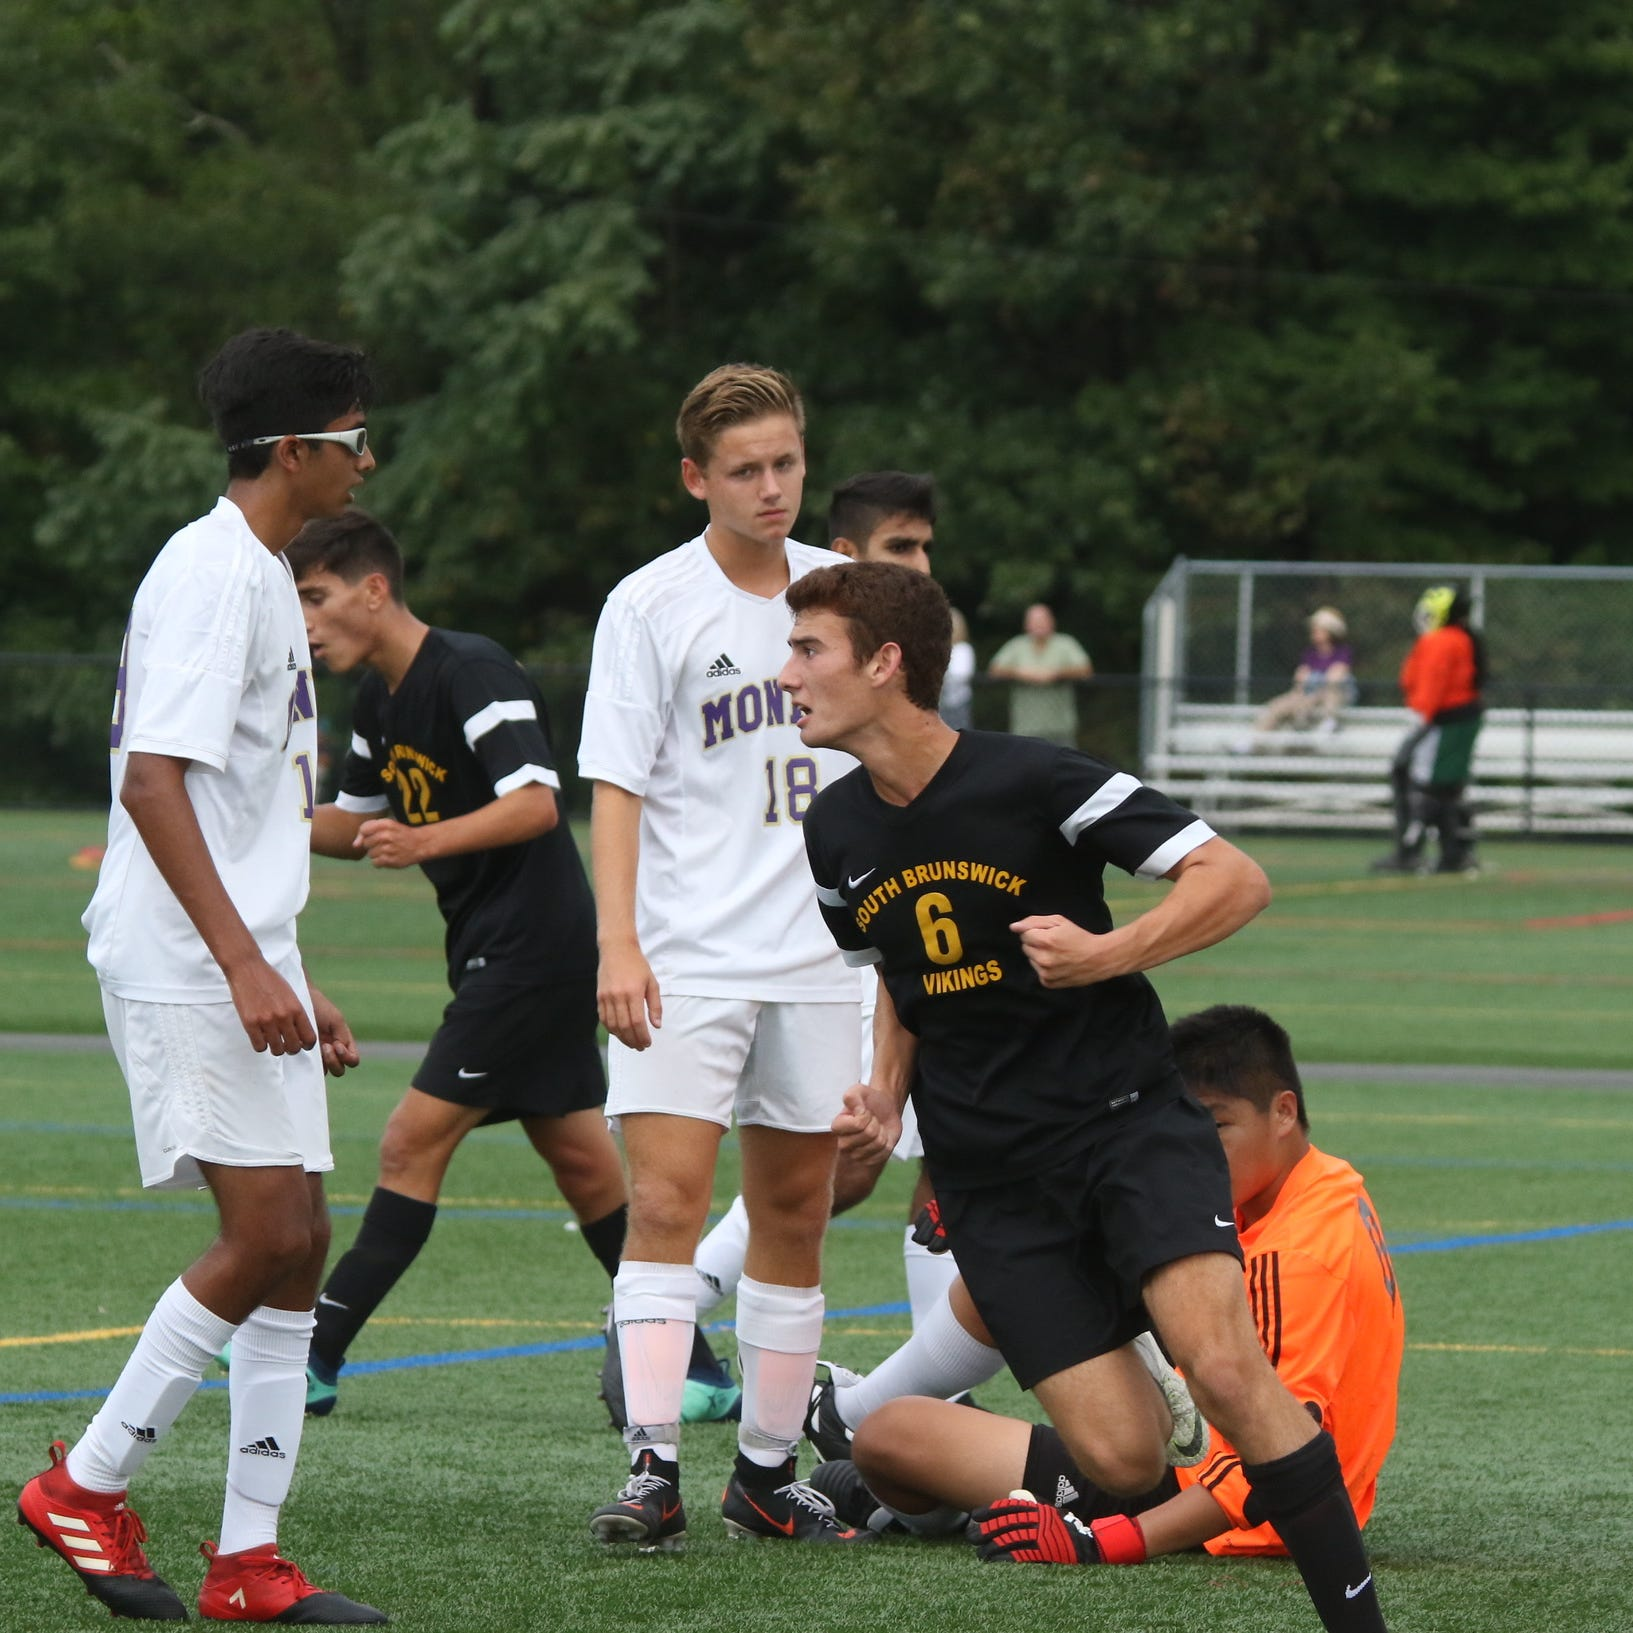 Boys soccer: South Brunswick's Ferry voted Athlete of the Week